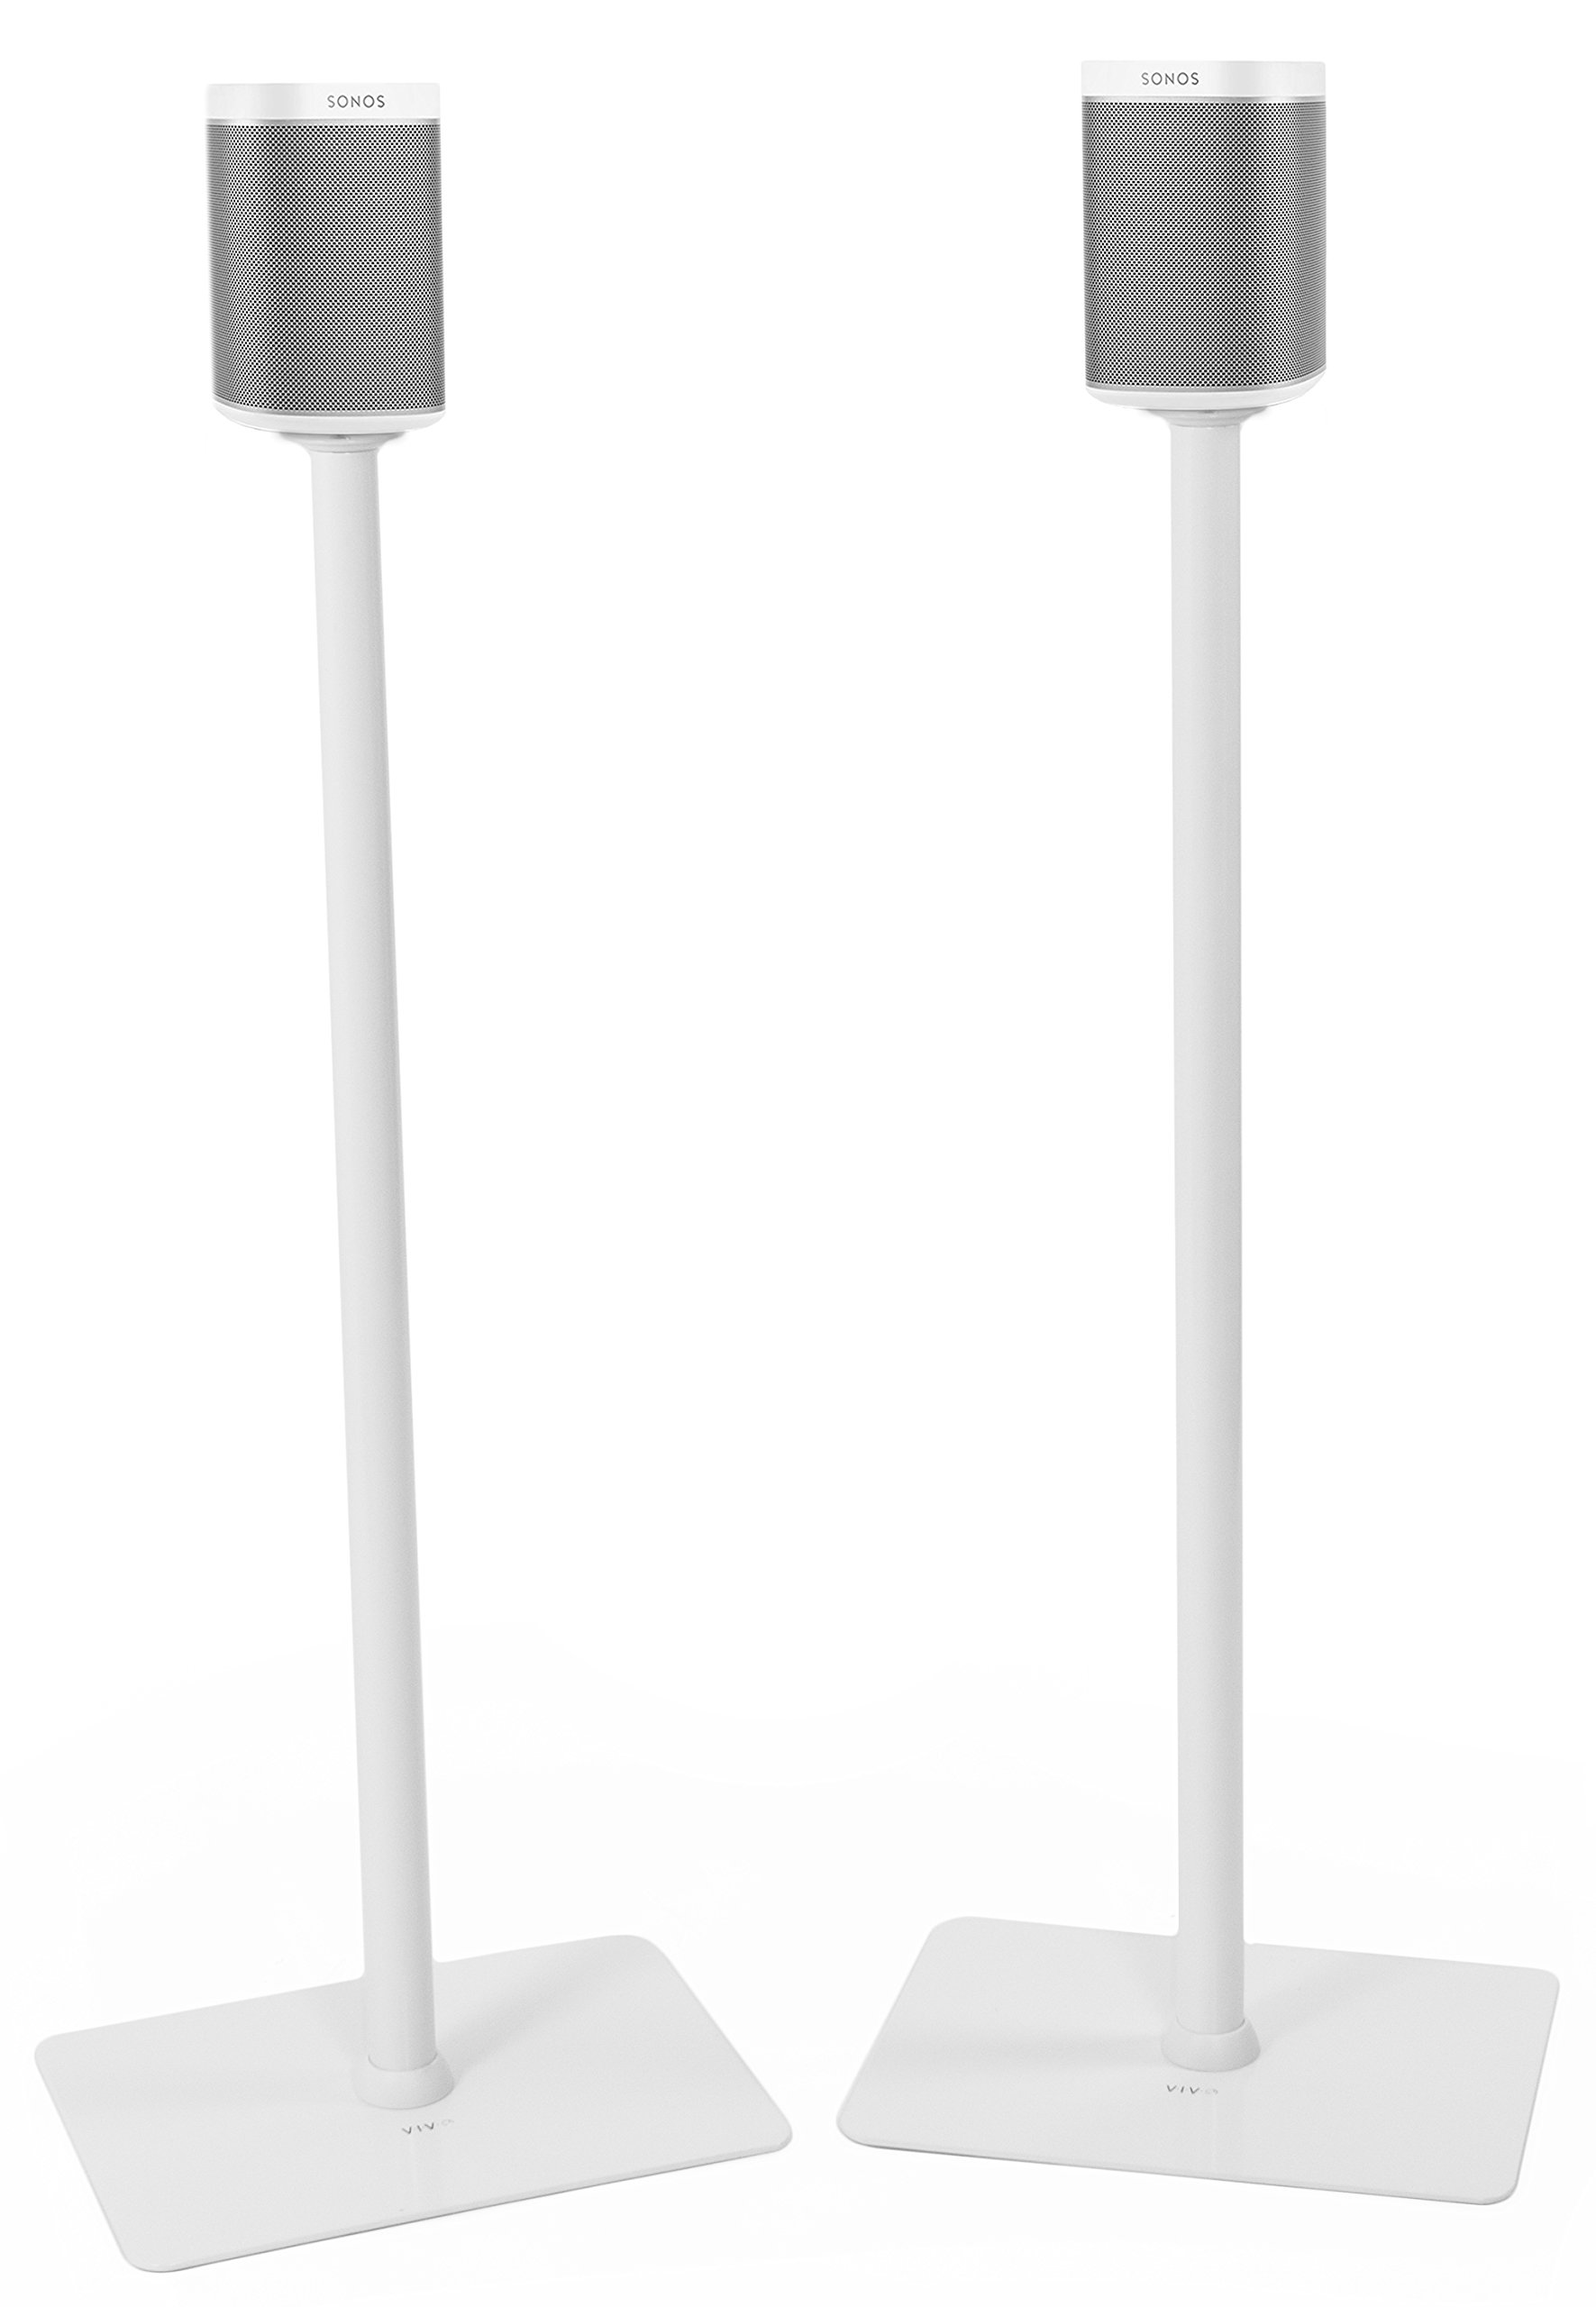 VIVO White 39 inch Speaker Floor Stands (Pair) Designed for SONOS Play 1 and Play 3 Audio Speaker, Freestanding Bracket Mounts (STAND-SP03W) by VIVO